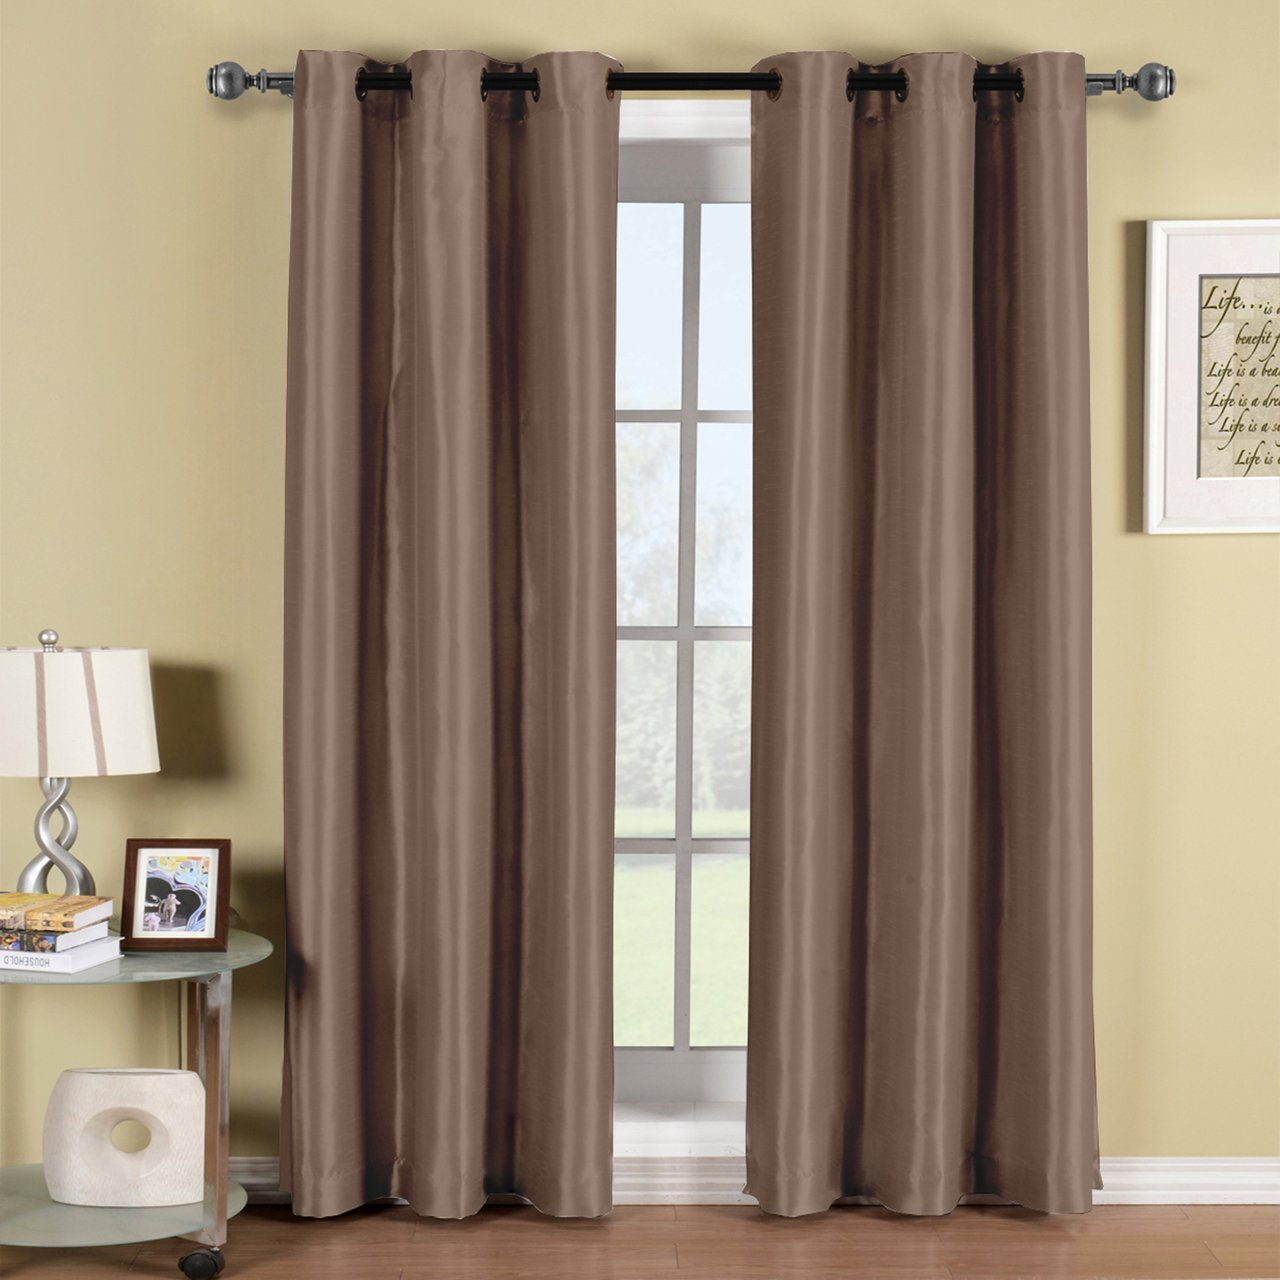 Royal Hotel Soho Mocha Grommet Blackout Window Curtain Panel, Solid Pattern, 42x63 inches, by